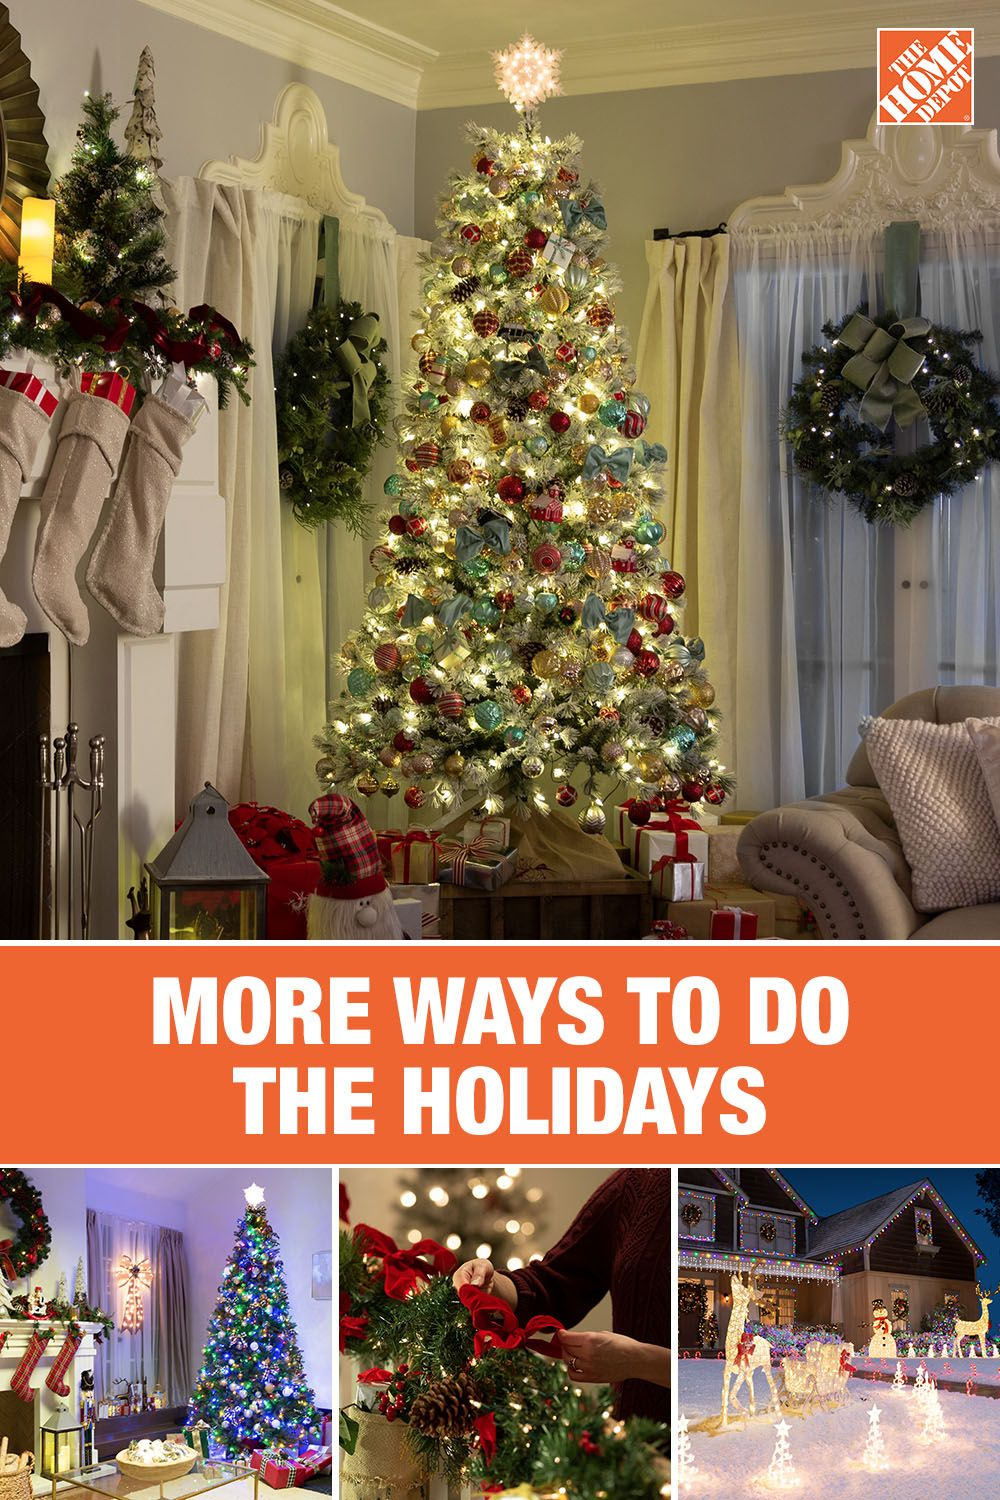 Shop More Ways To Do The Holidays At The Home Depot With A Wide Variety Of Holiday Decor All Availab Holiday Decor Christmas Holiday Decor Christmas Decor Diy